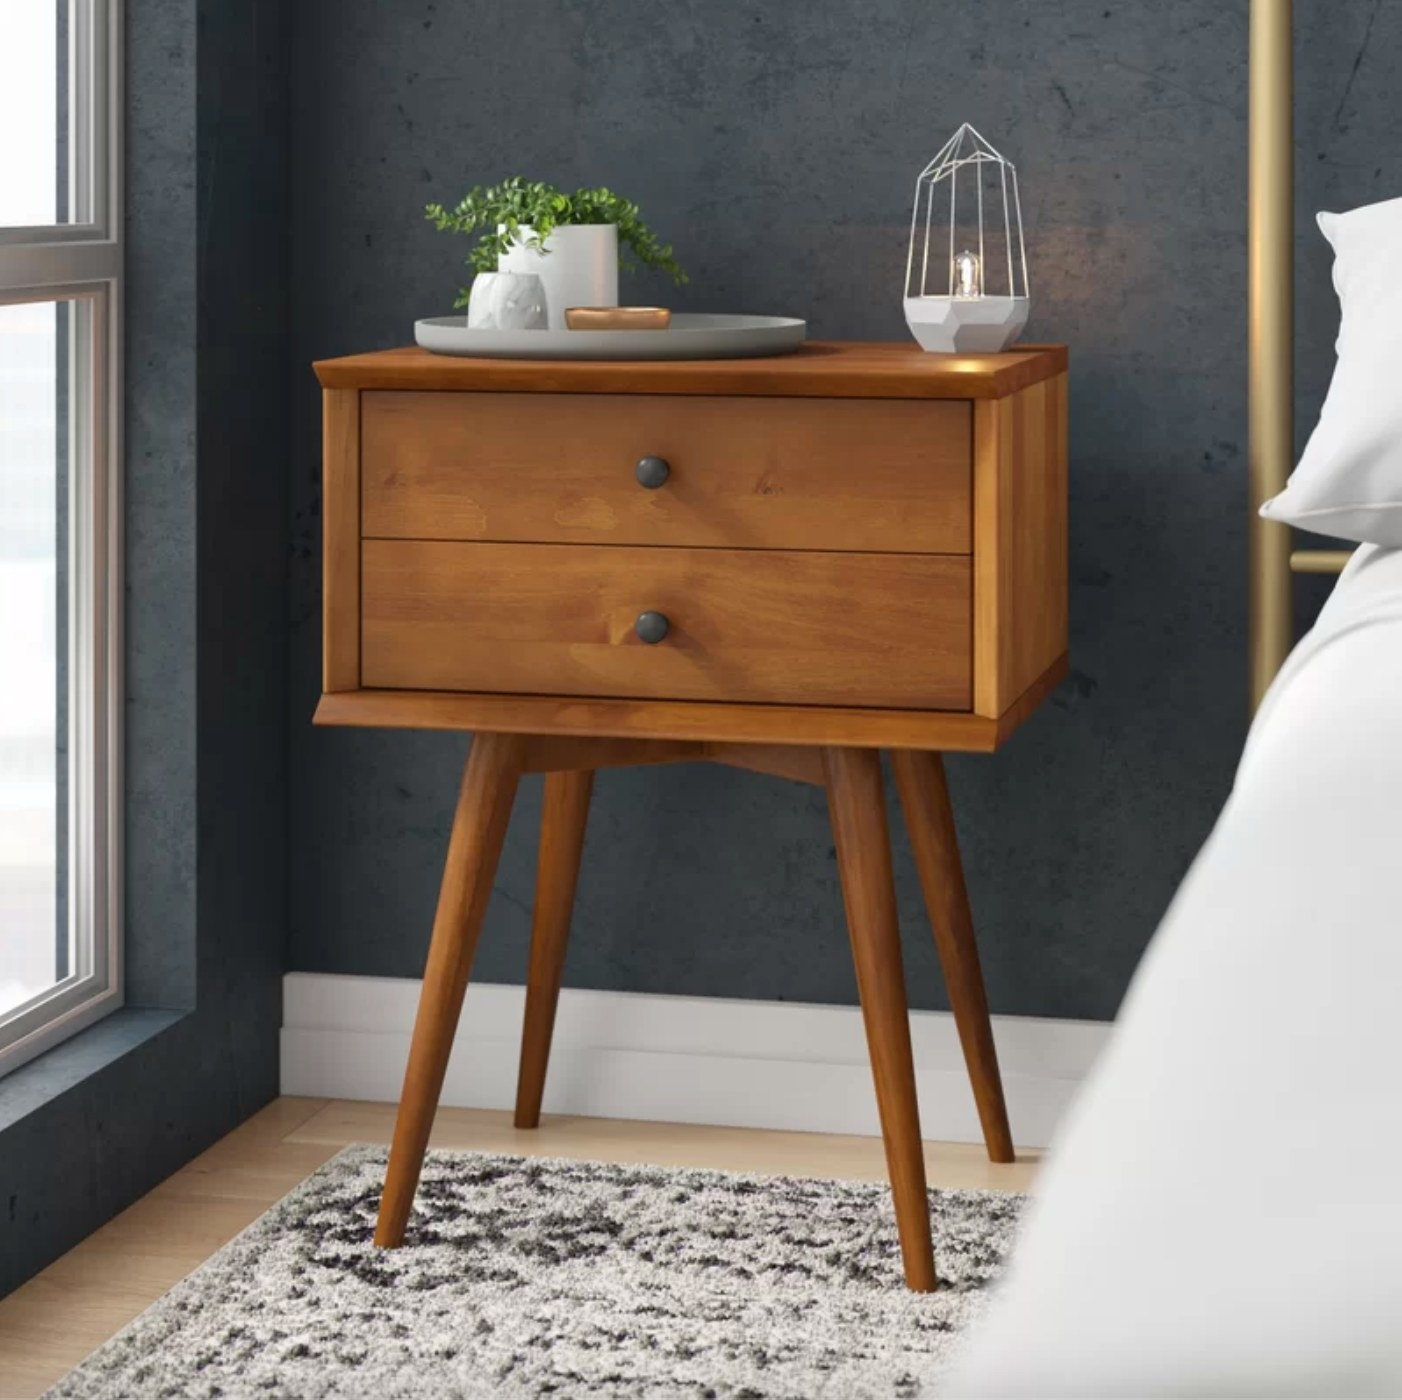 The solid wood double drawer nightstand in Castanho holding a plant and lamp